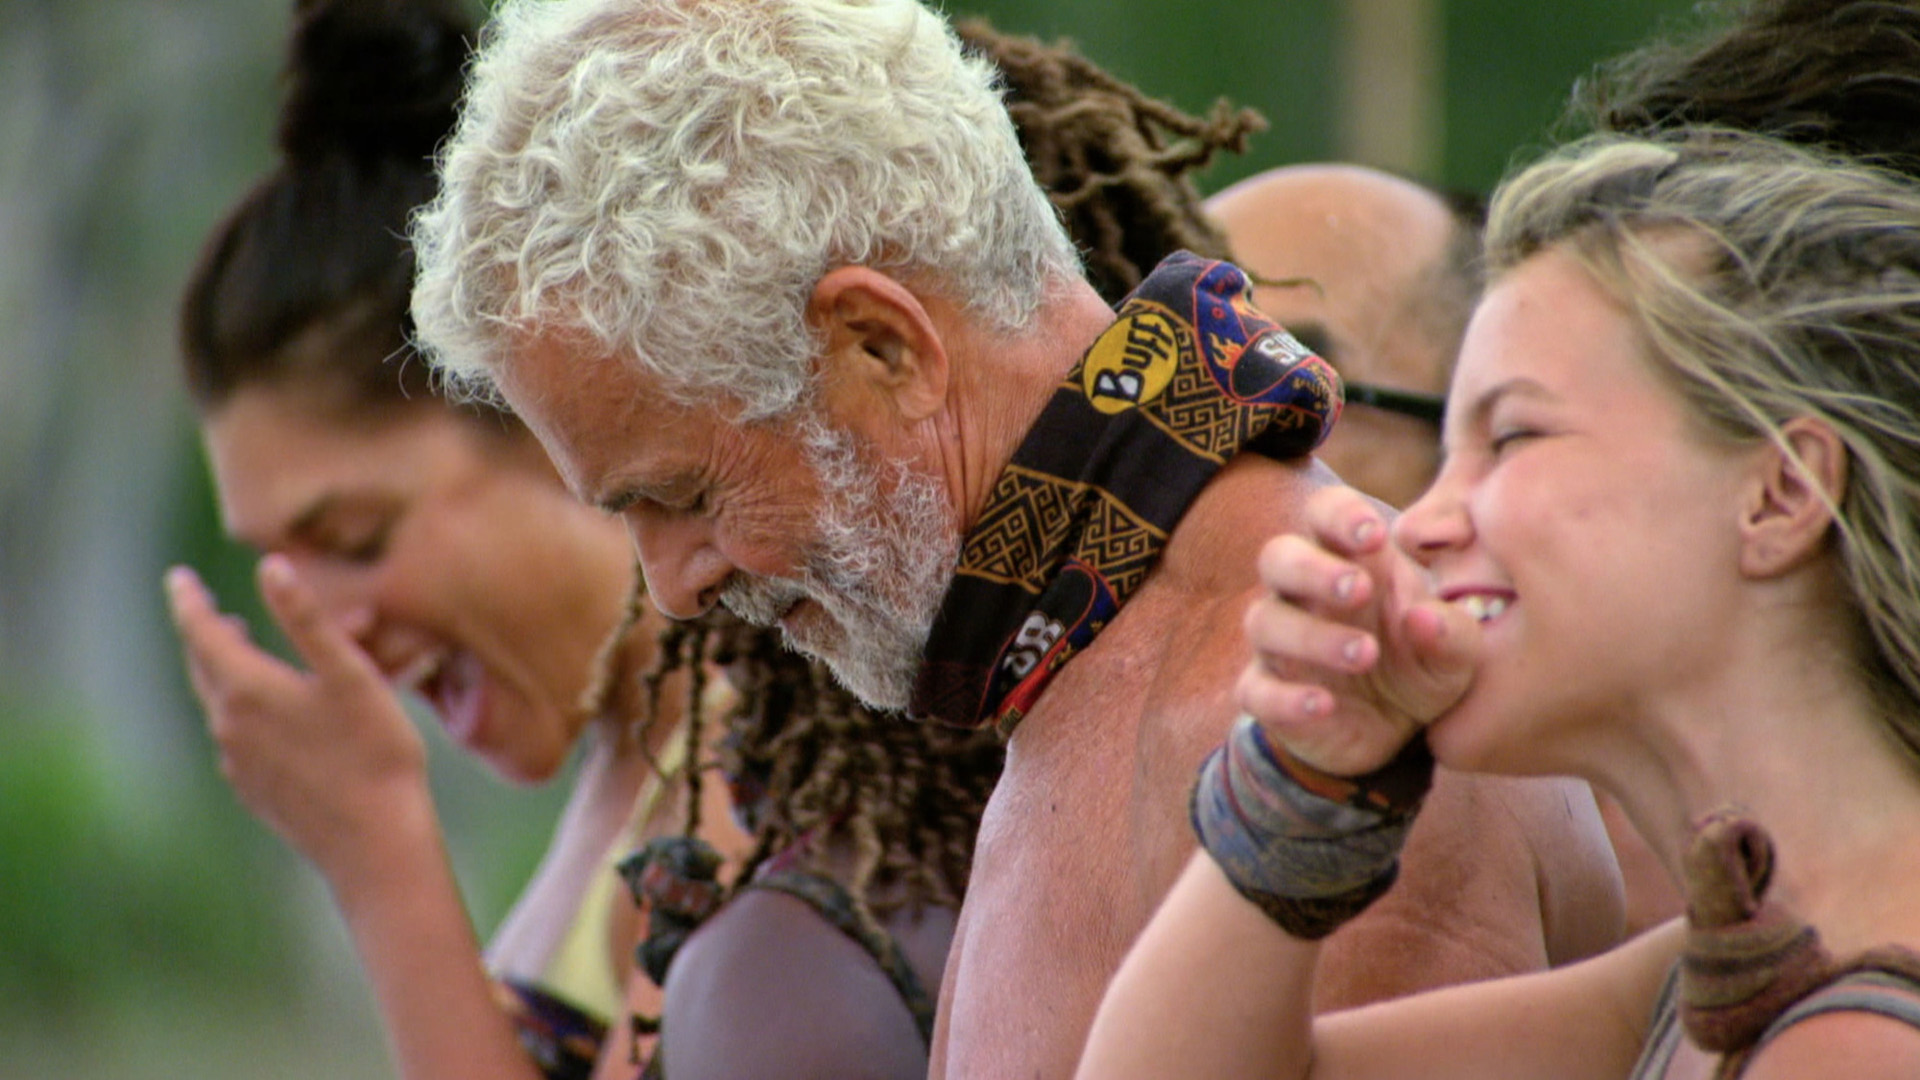 It's a tough game, but that doesn't keep the castaways from enjoying their experience.